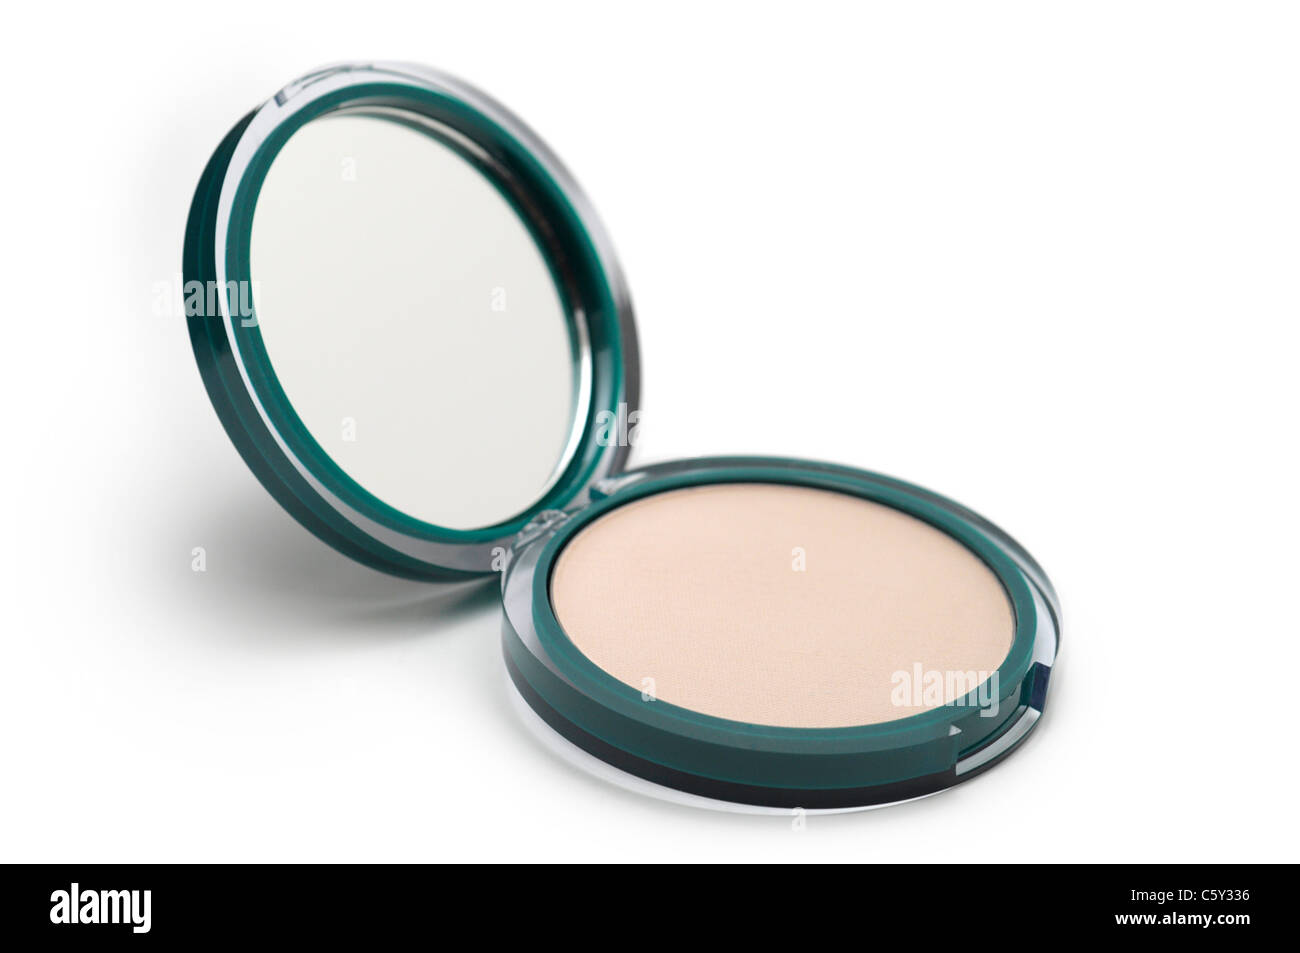 Face Powder Compact - Stock Image